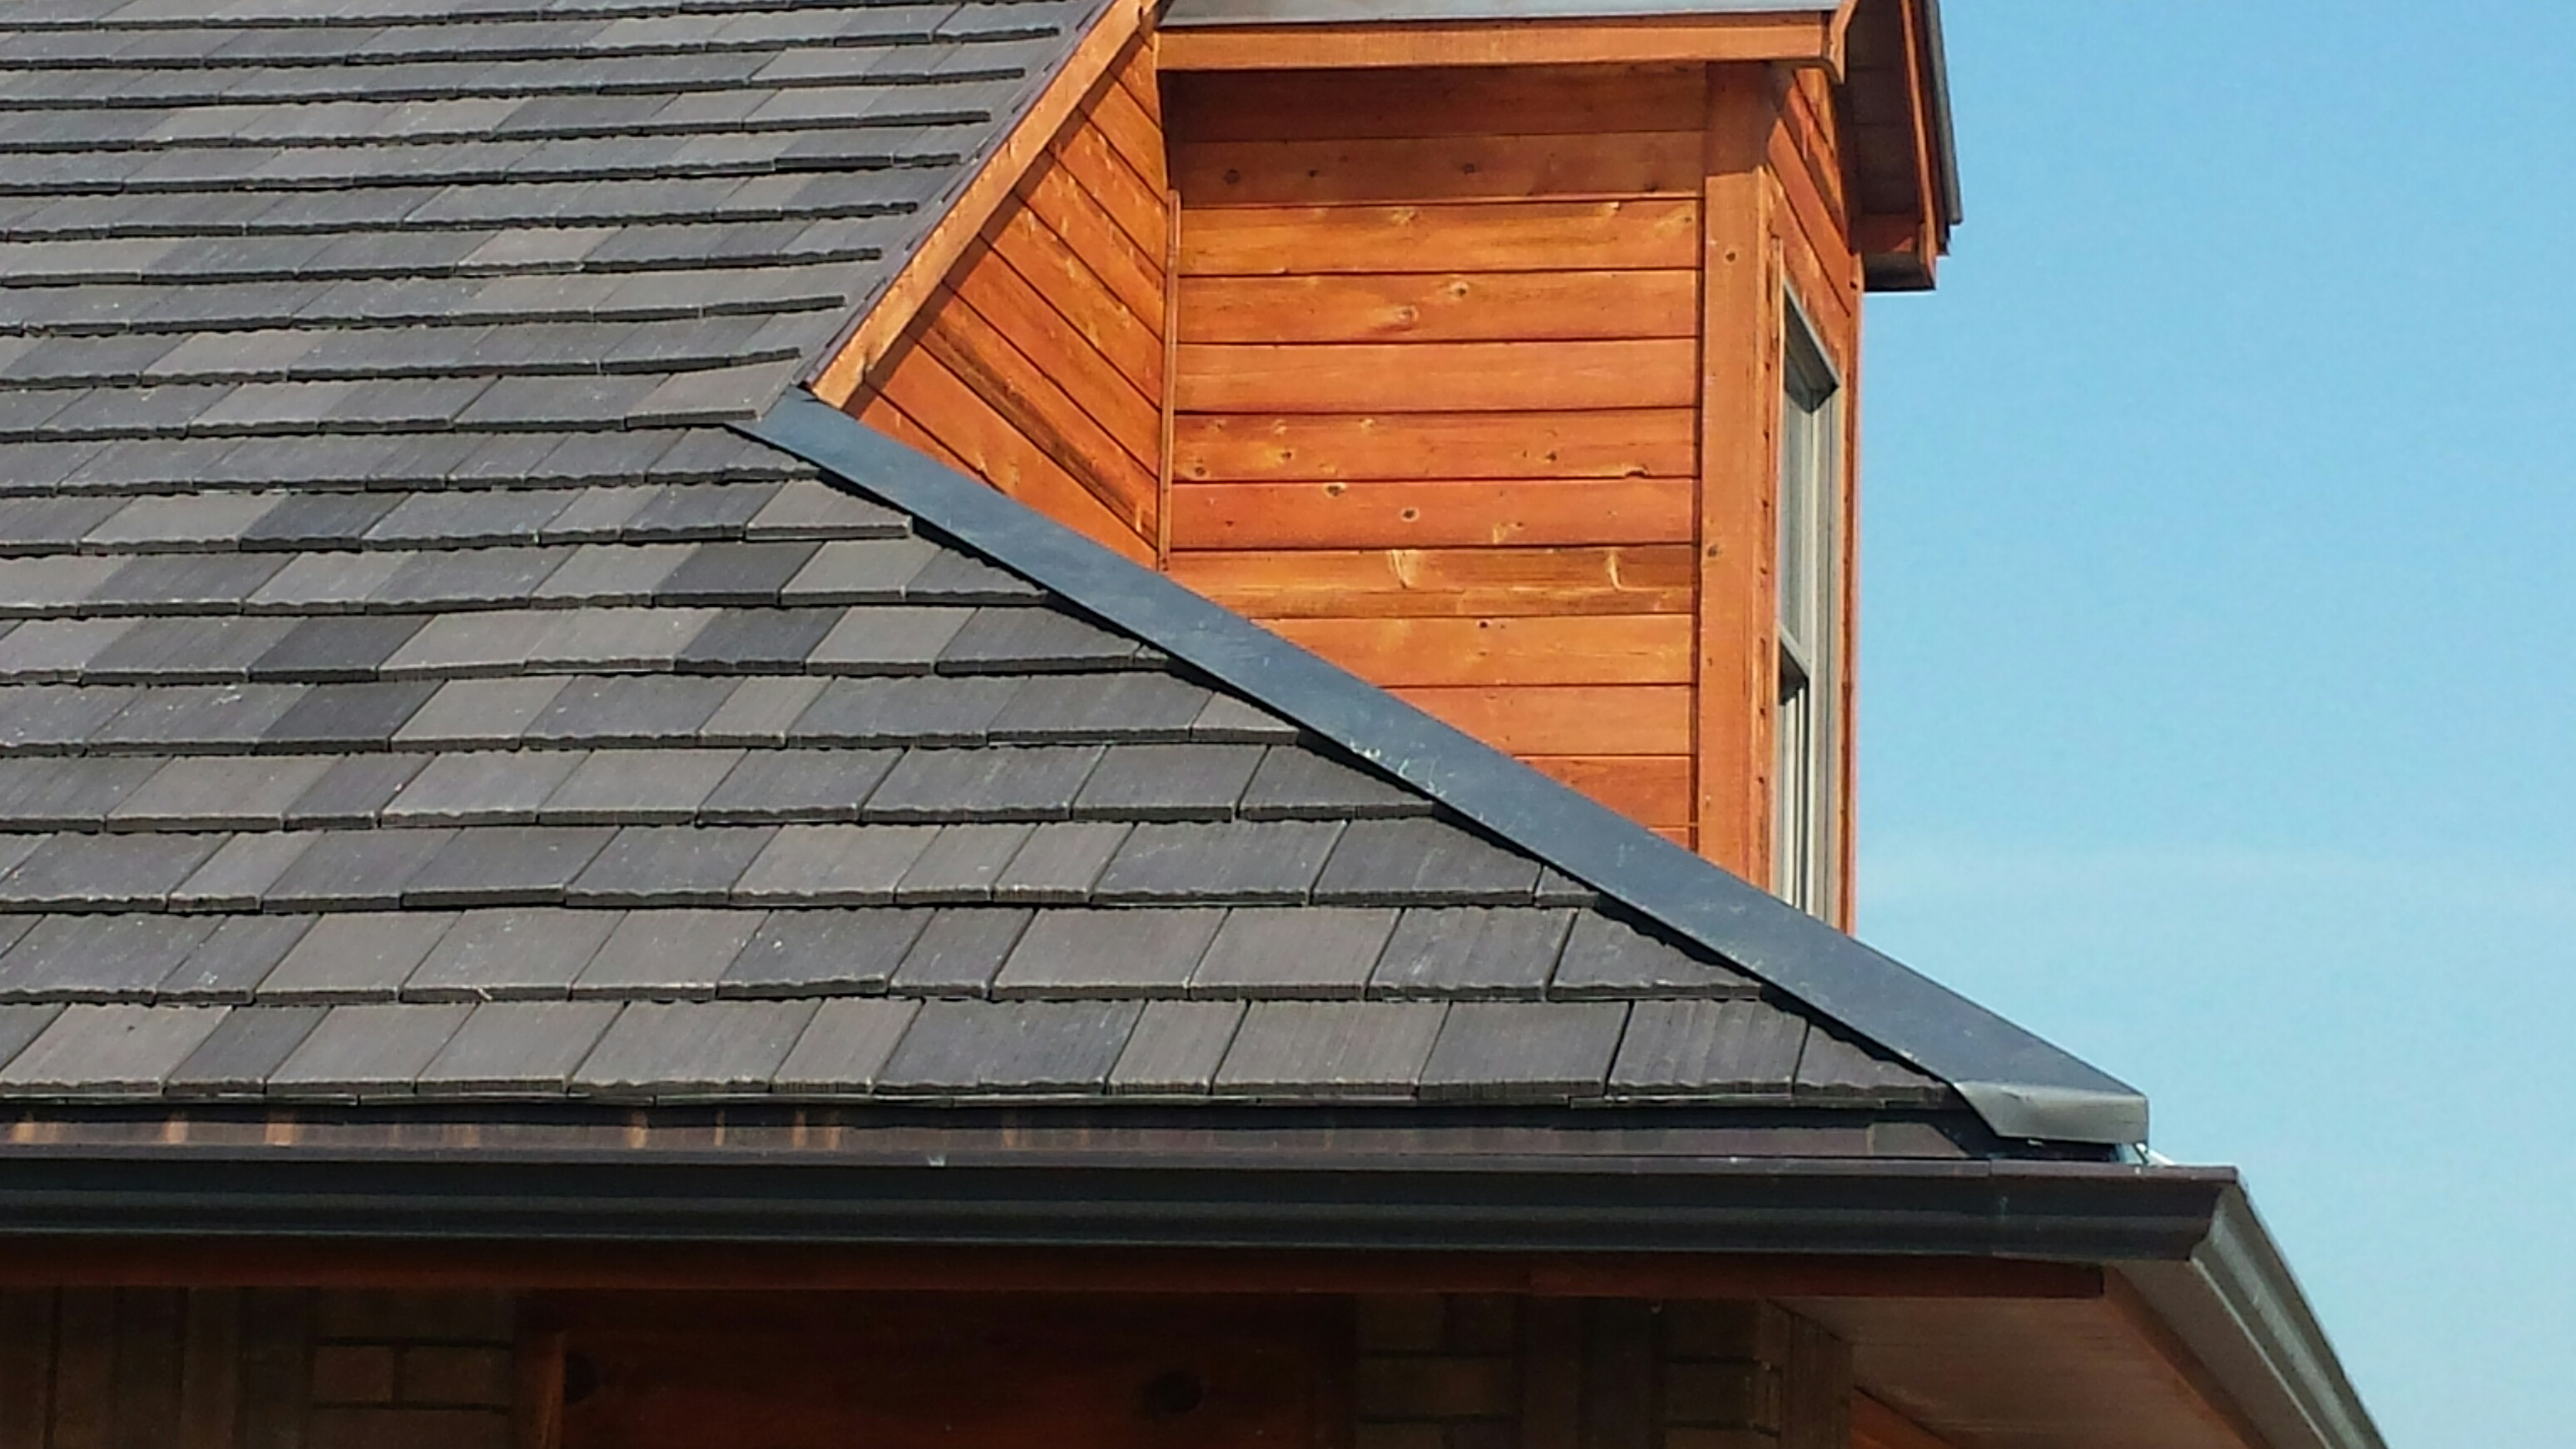 2015 fire prevention week roofing choices matter for Davinci roof tiles pricing